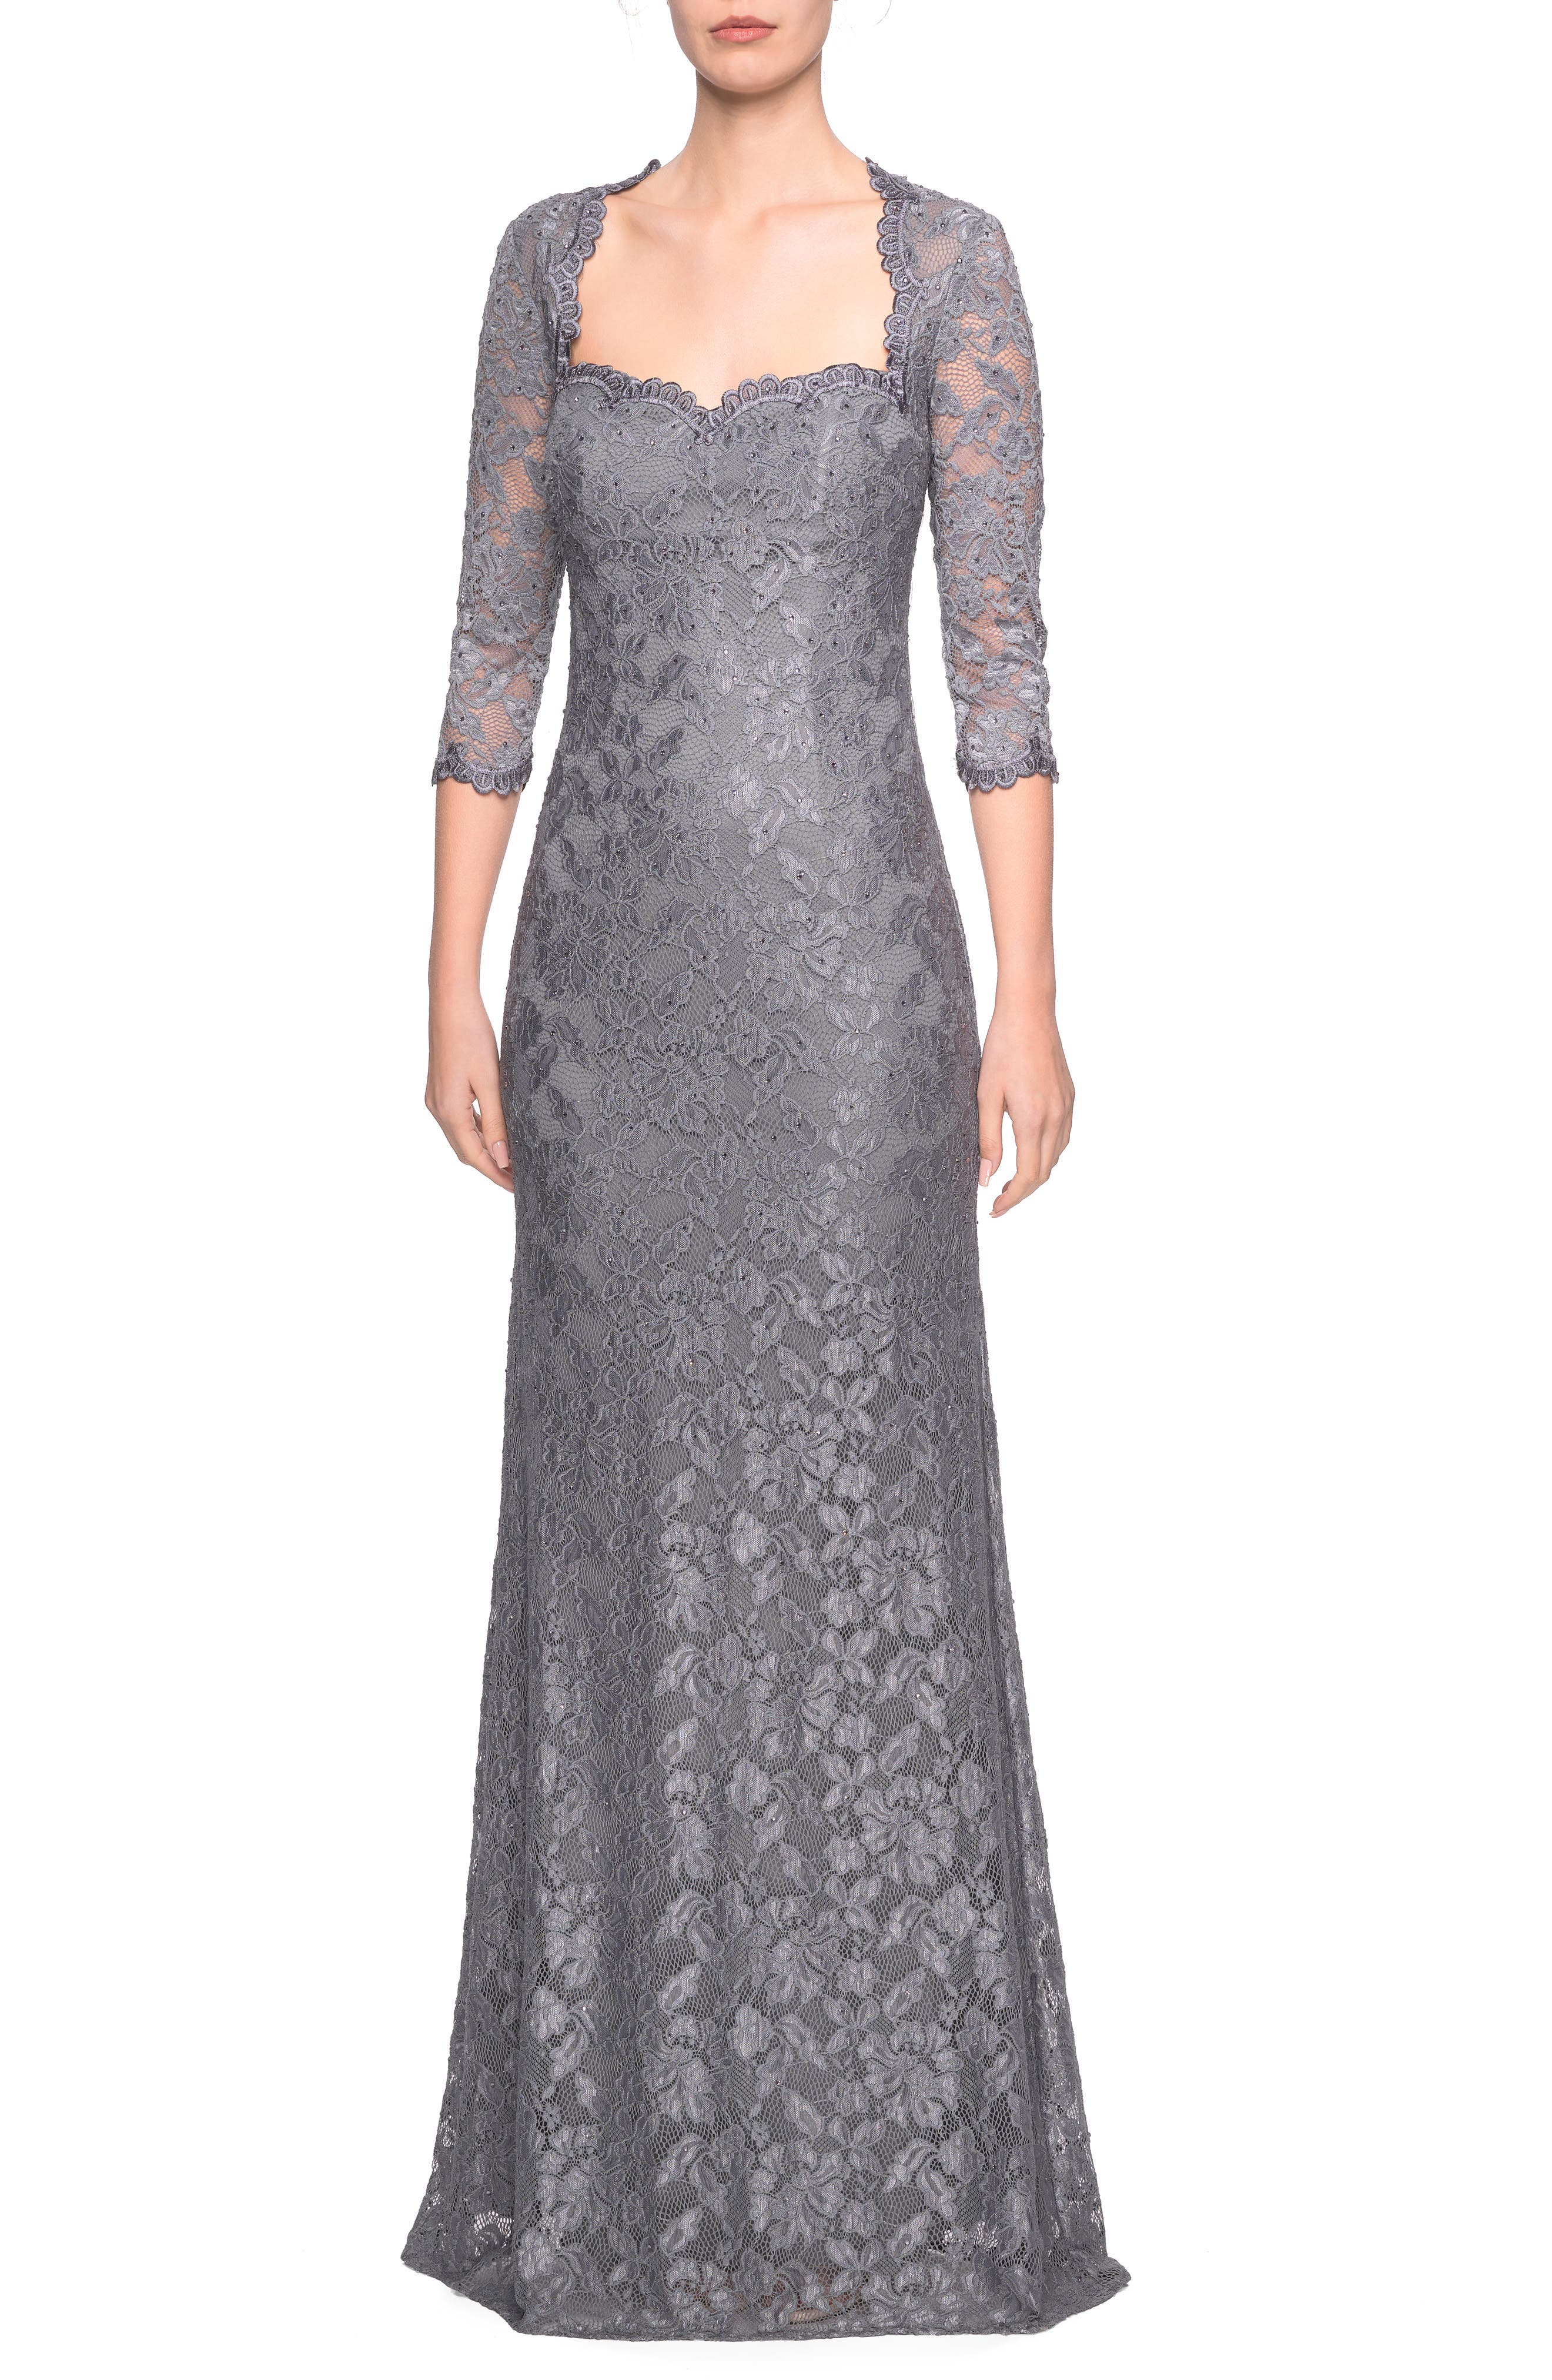 LA FEMME Lace Column Gown, Main, color, PLATINUM